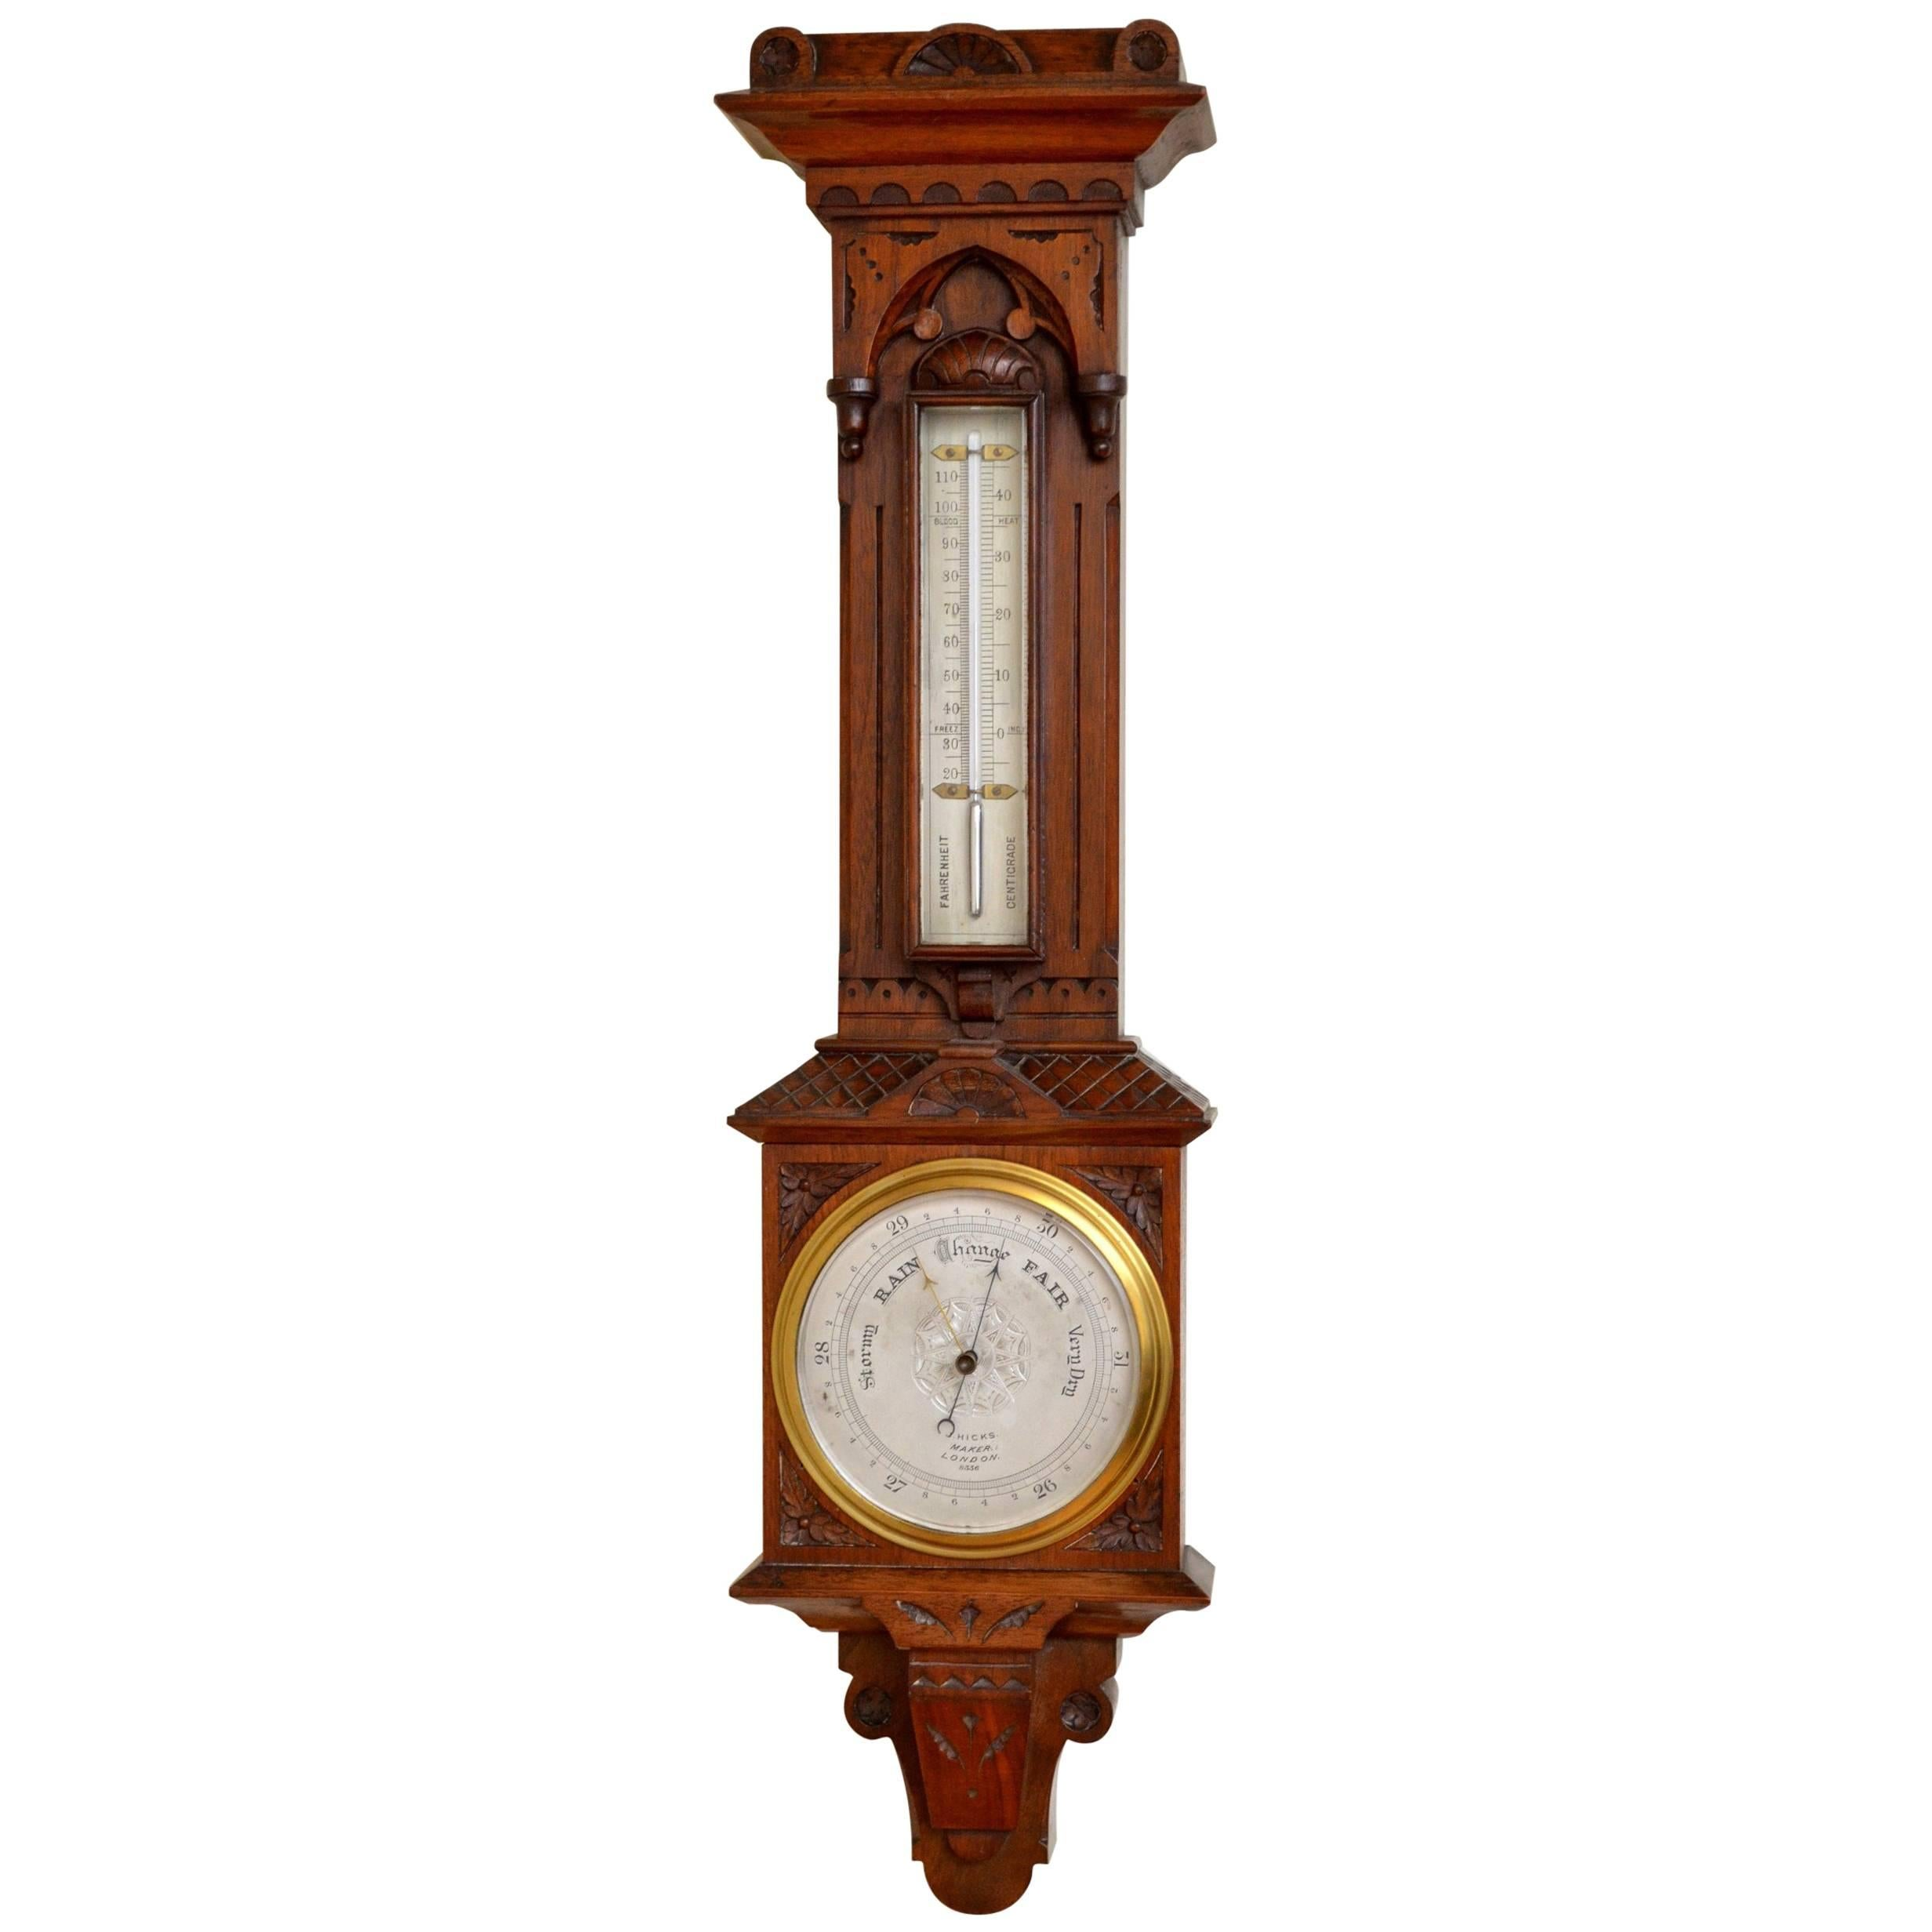 wheeler desbois the tavern premier s antiques clocks and clock iii search uk late period art george watches mahogany topwell england